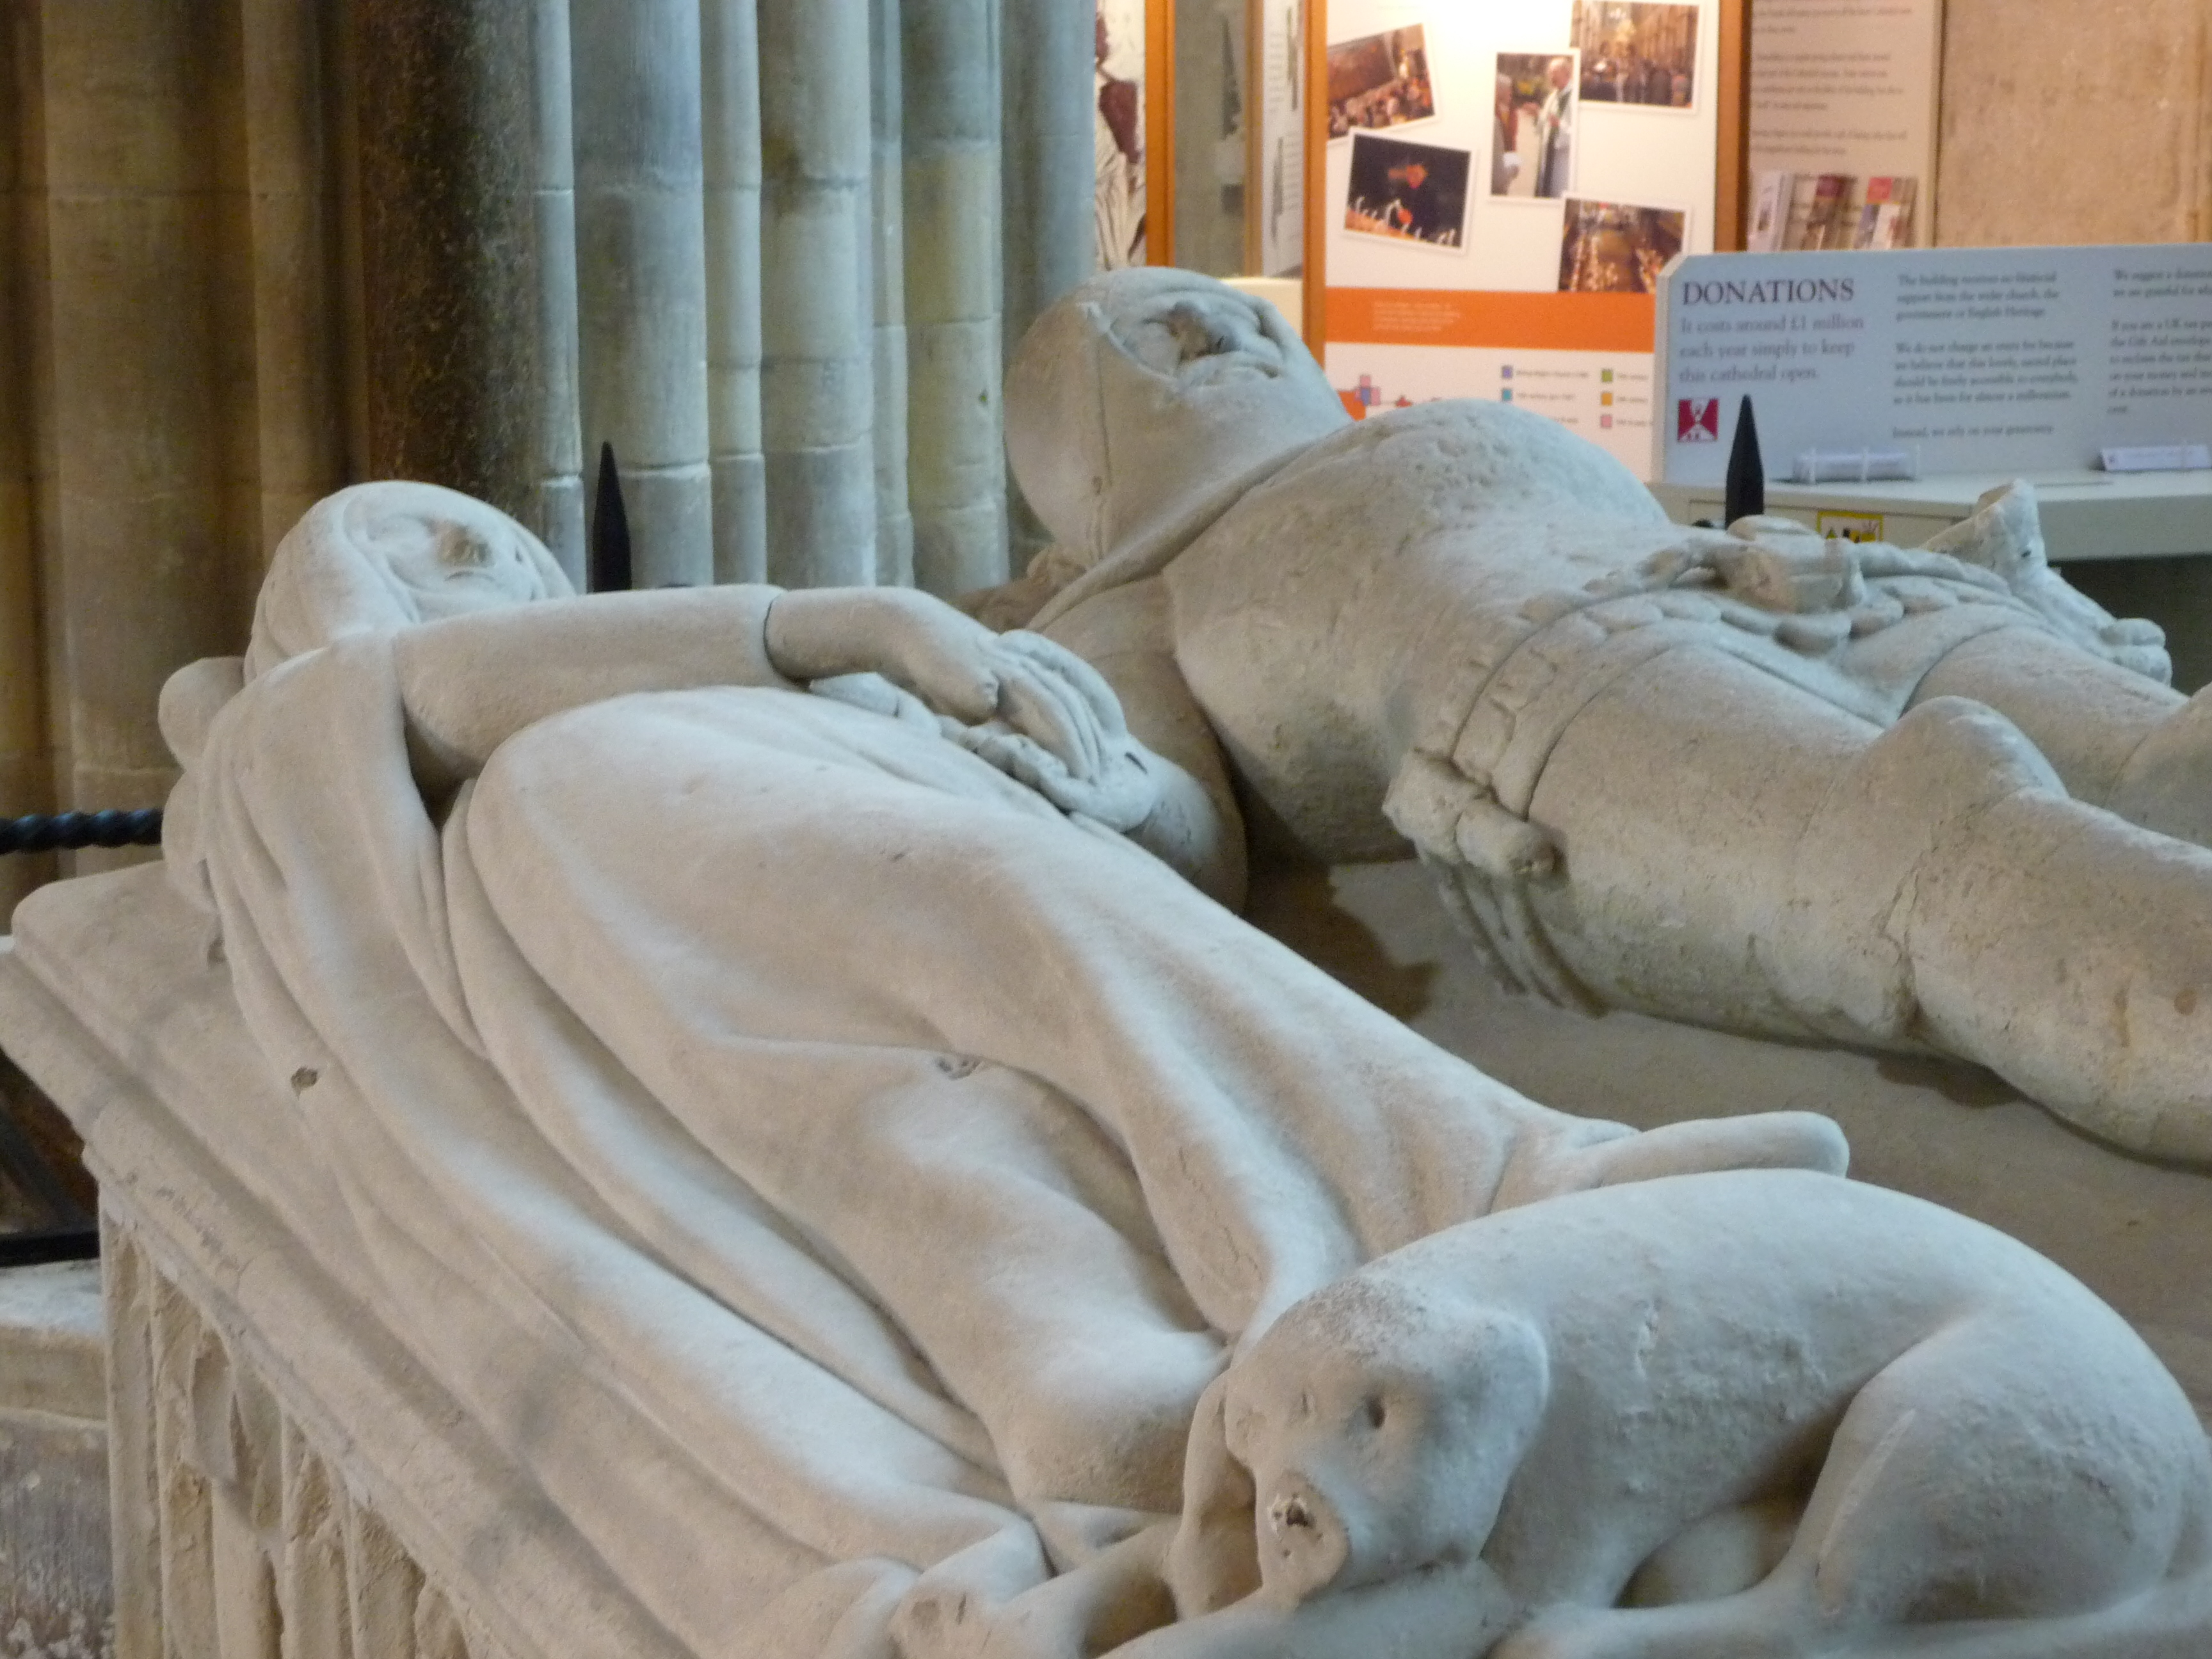 arundel tomb essay In an arundel tomb larkin unravels the conviction that love survives after death and dispels this idiotic notion, even if it's what we want to hear the poem is based on the arundel tomb in chichester cathedral, where two stone figures lieside by side with faces blurred.